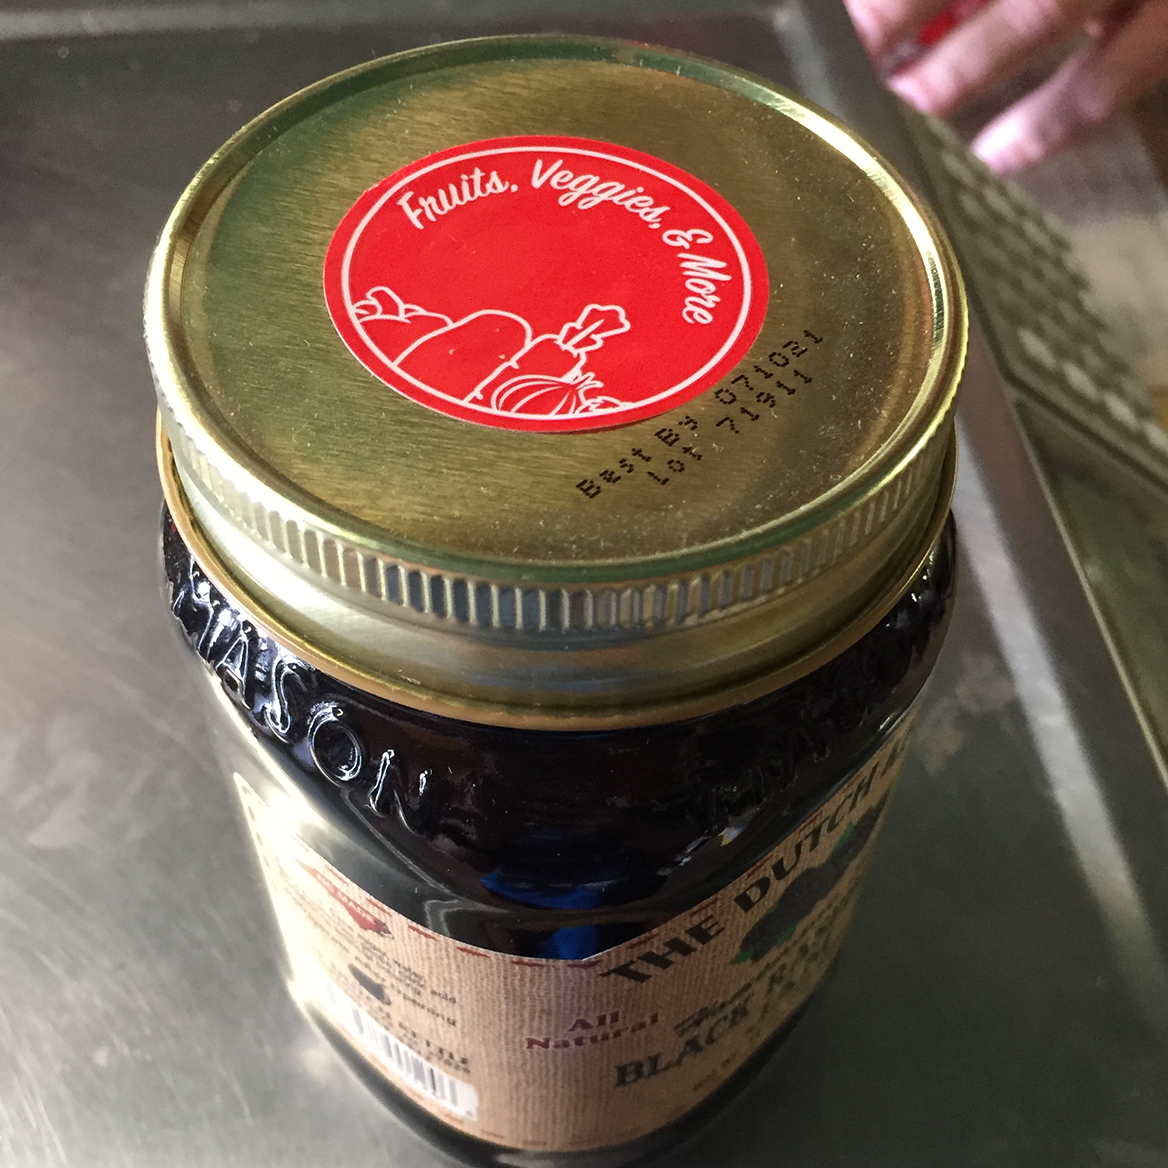 Jar top label